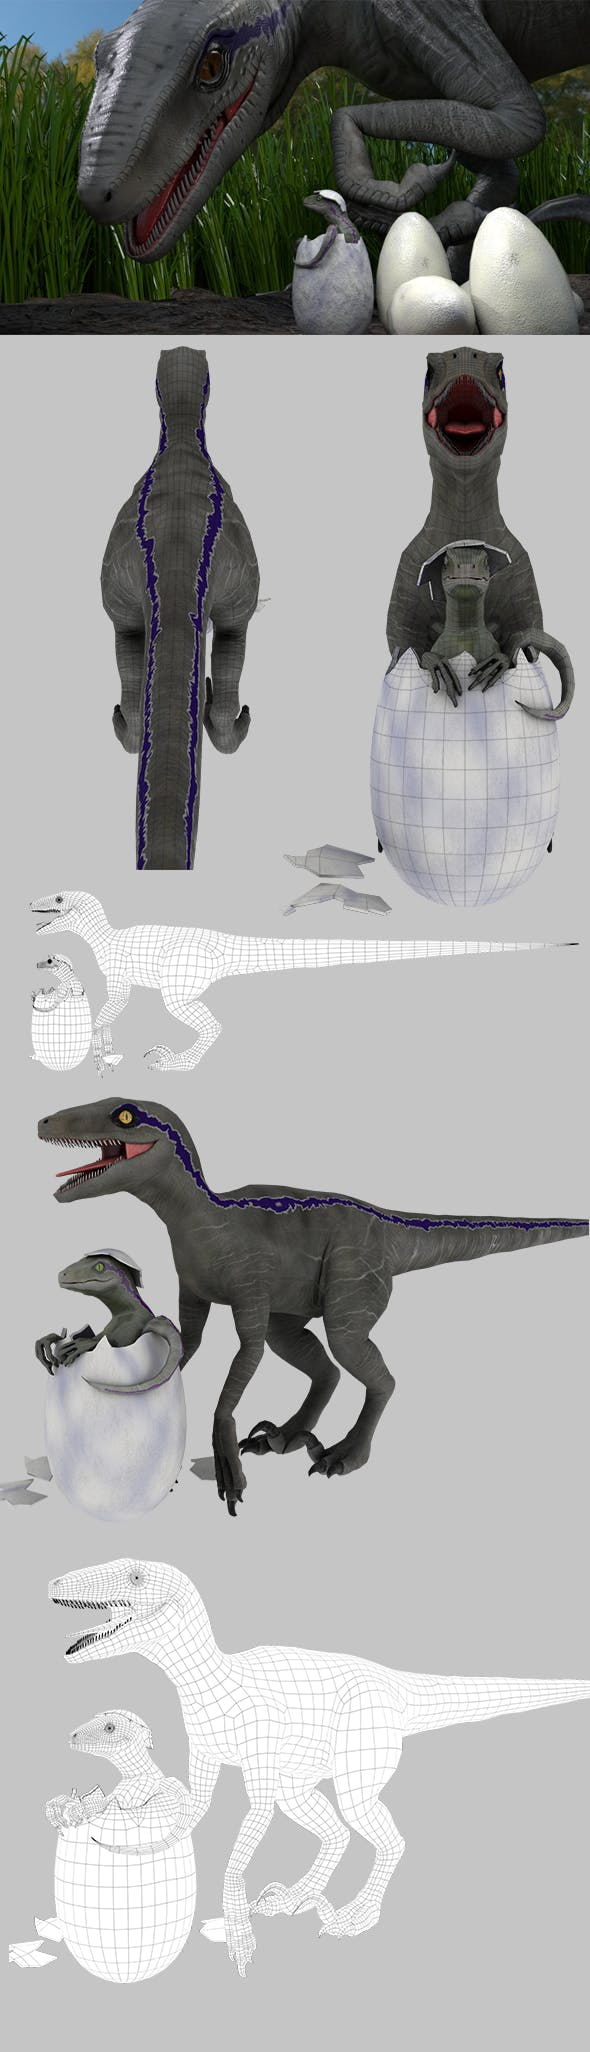 Velociraptor and Baby in Egg - 3DOcean Item for Sale